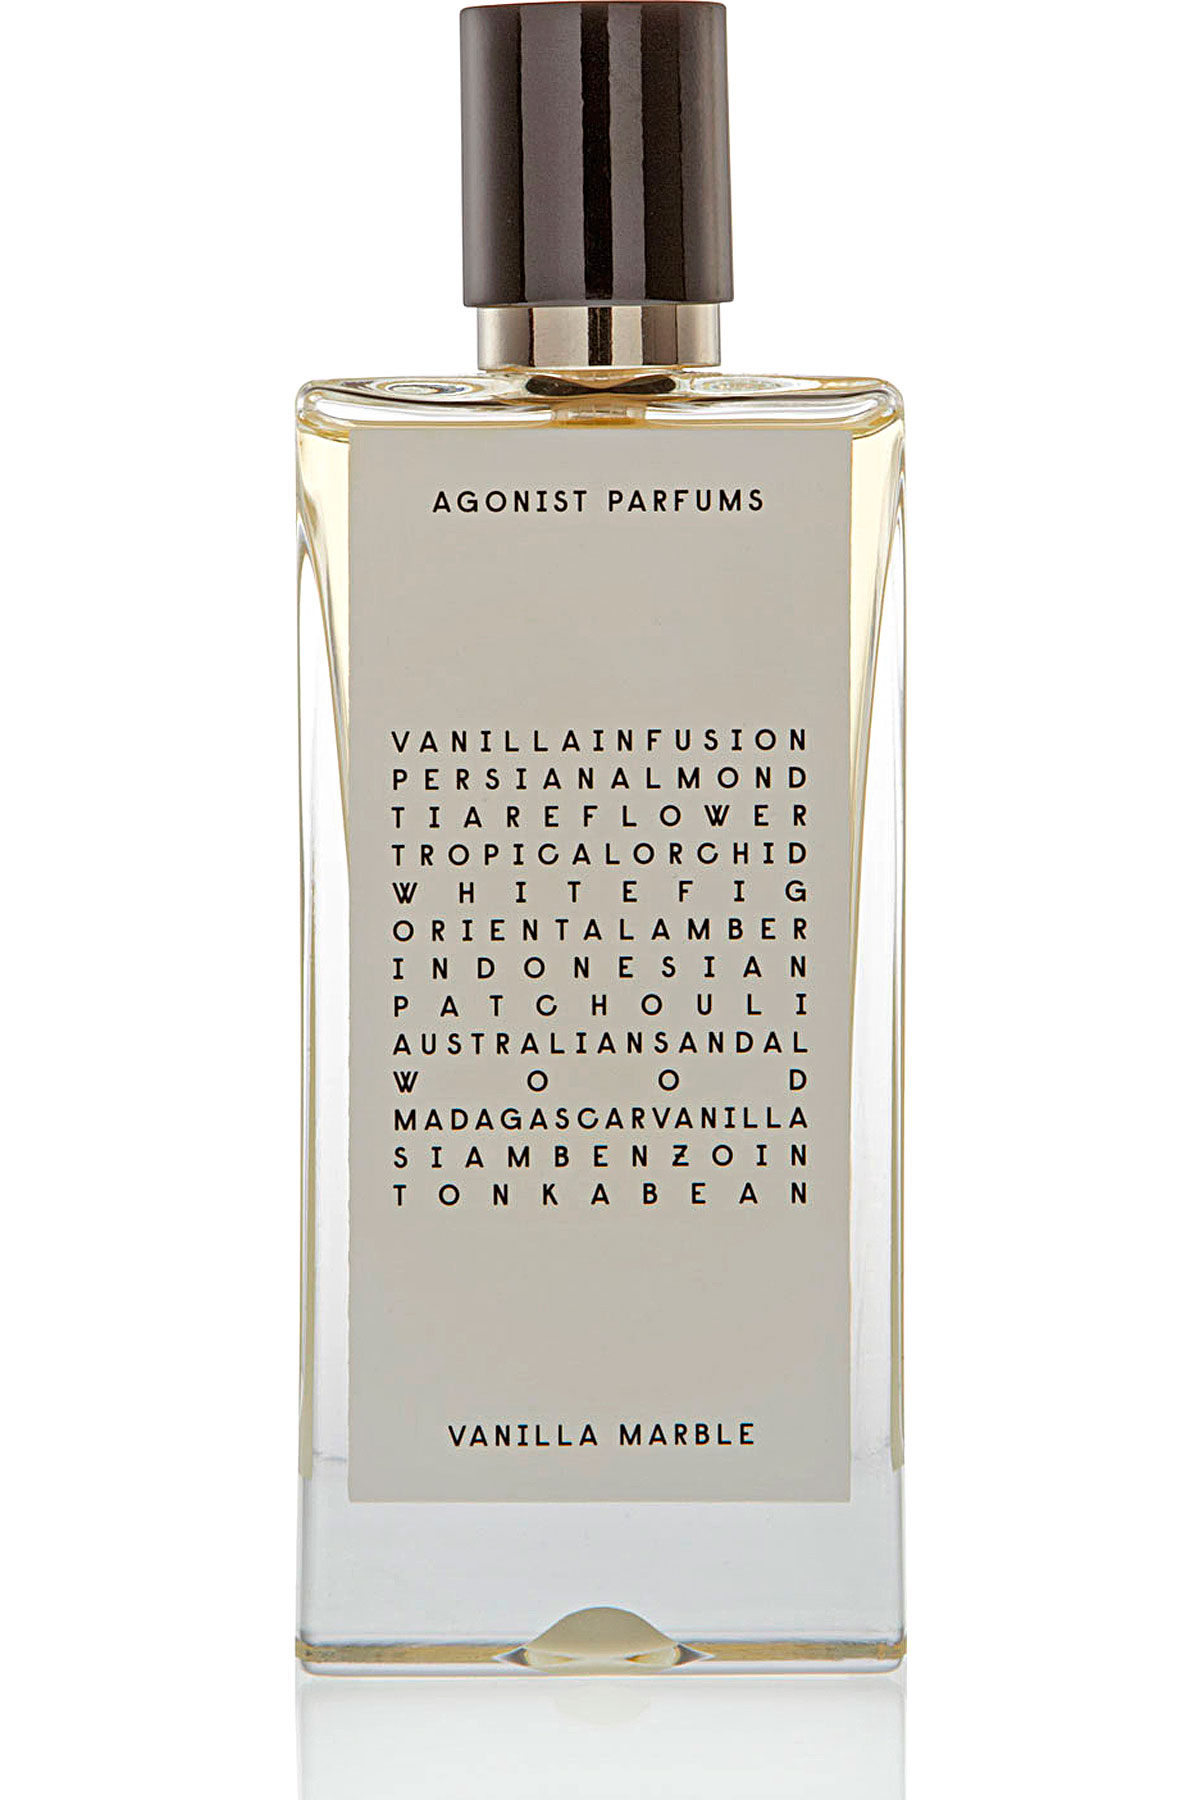 Agonist Fragrances for Men, Vanilla Marble - Eau De Parfum 50 Ml, 2019, 50 ml